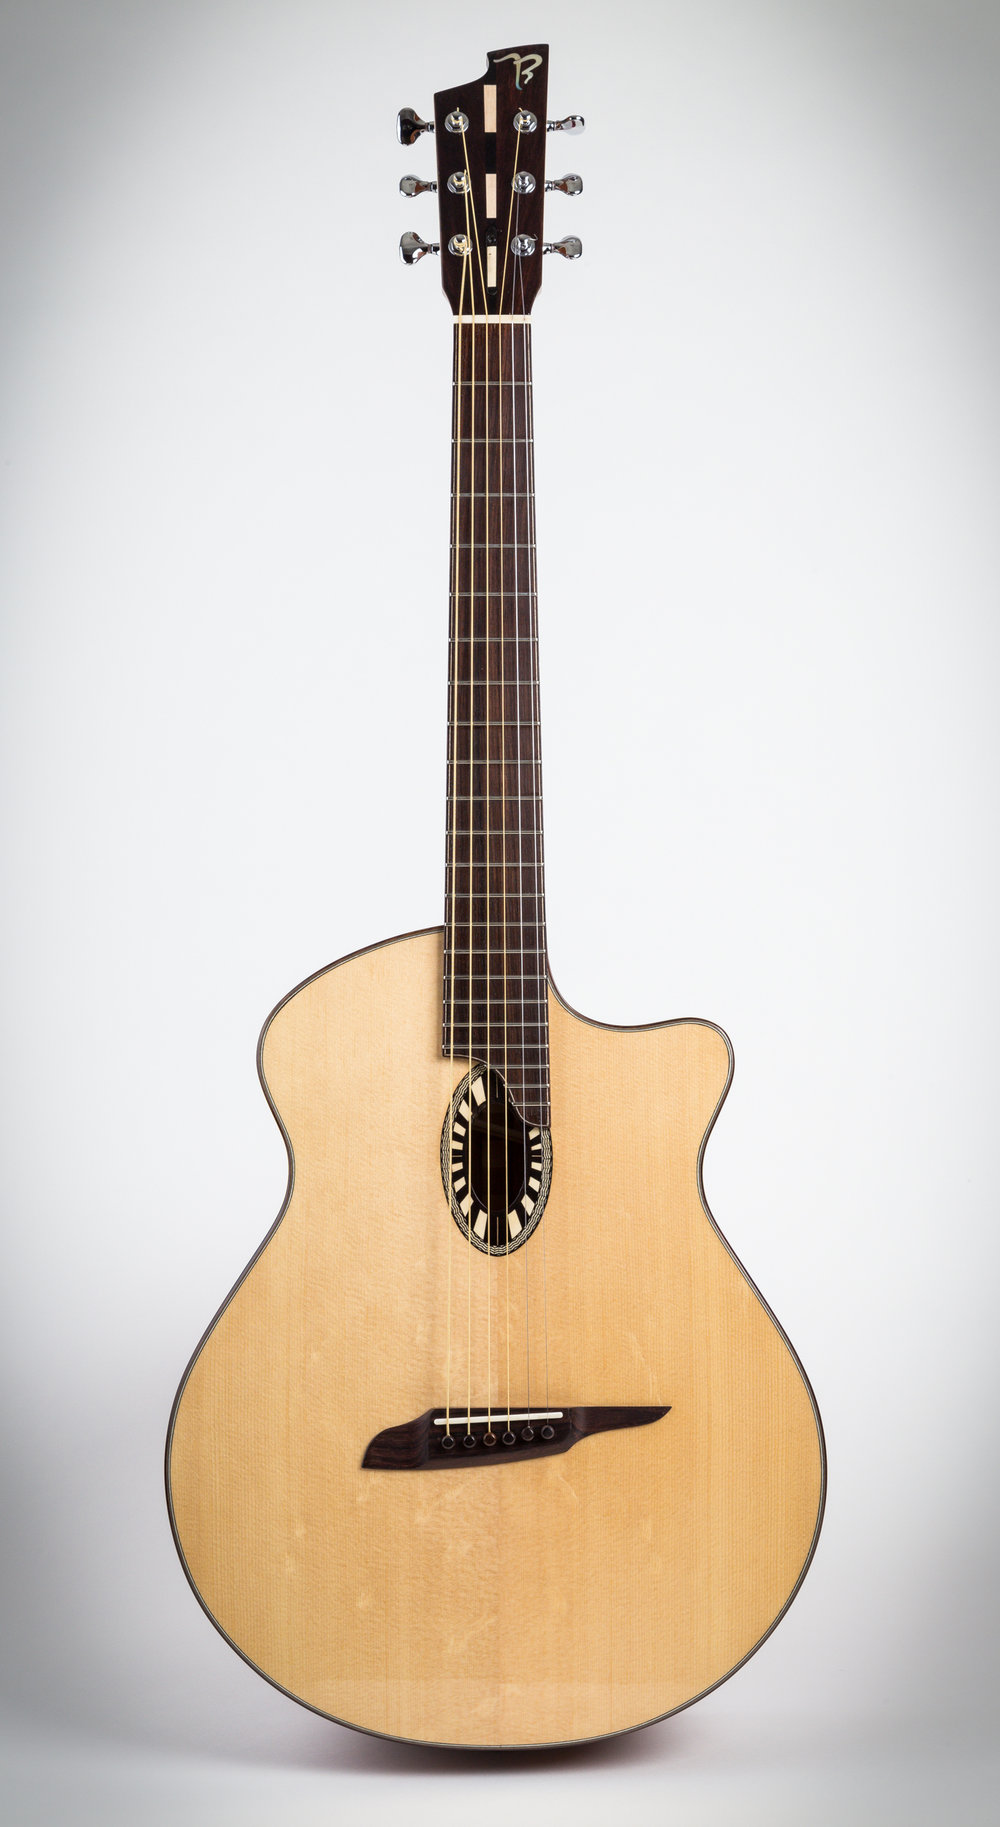 2D model 2 with bear claw Red spruce top